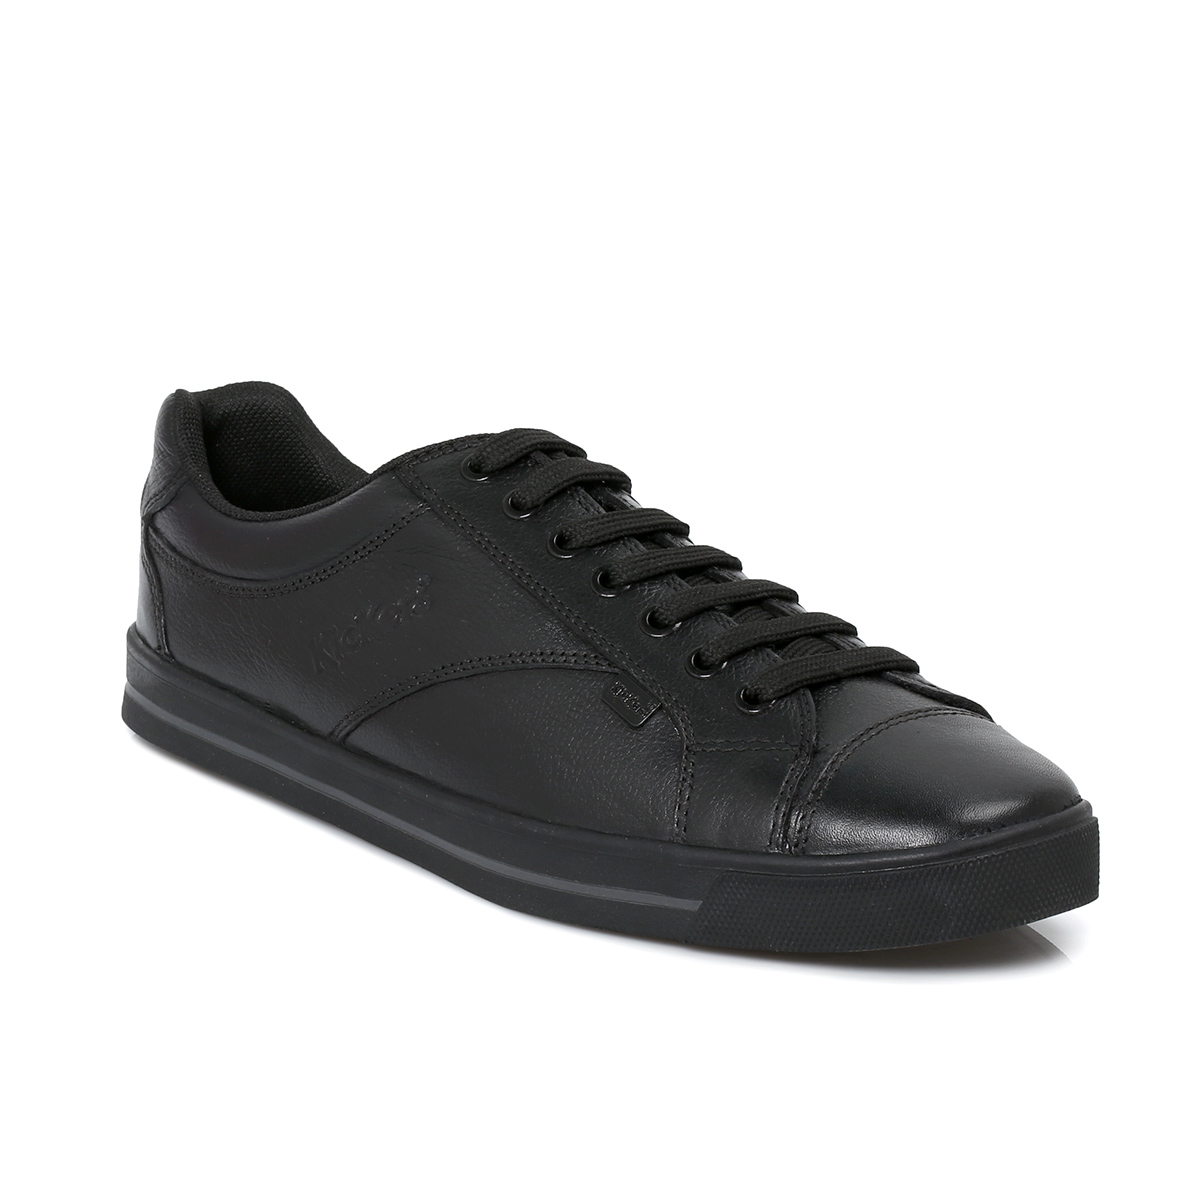 Kickers Black School Shoes Size